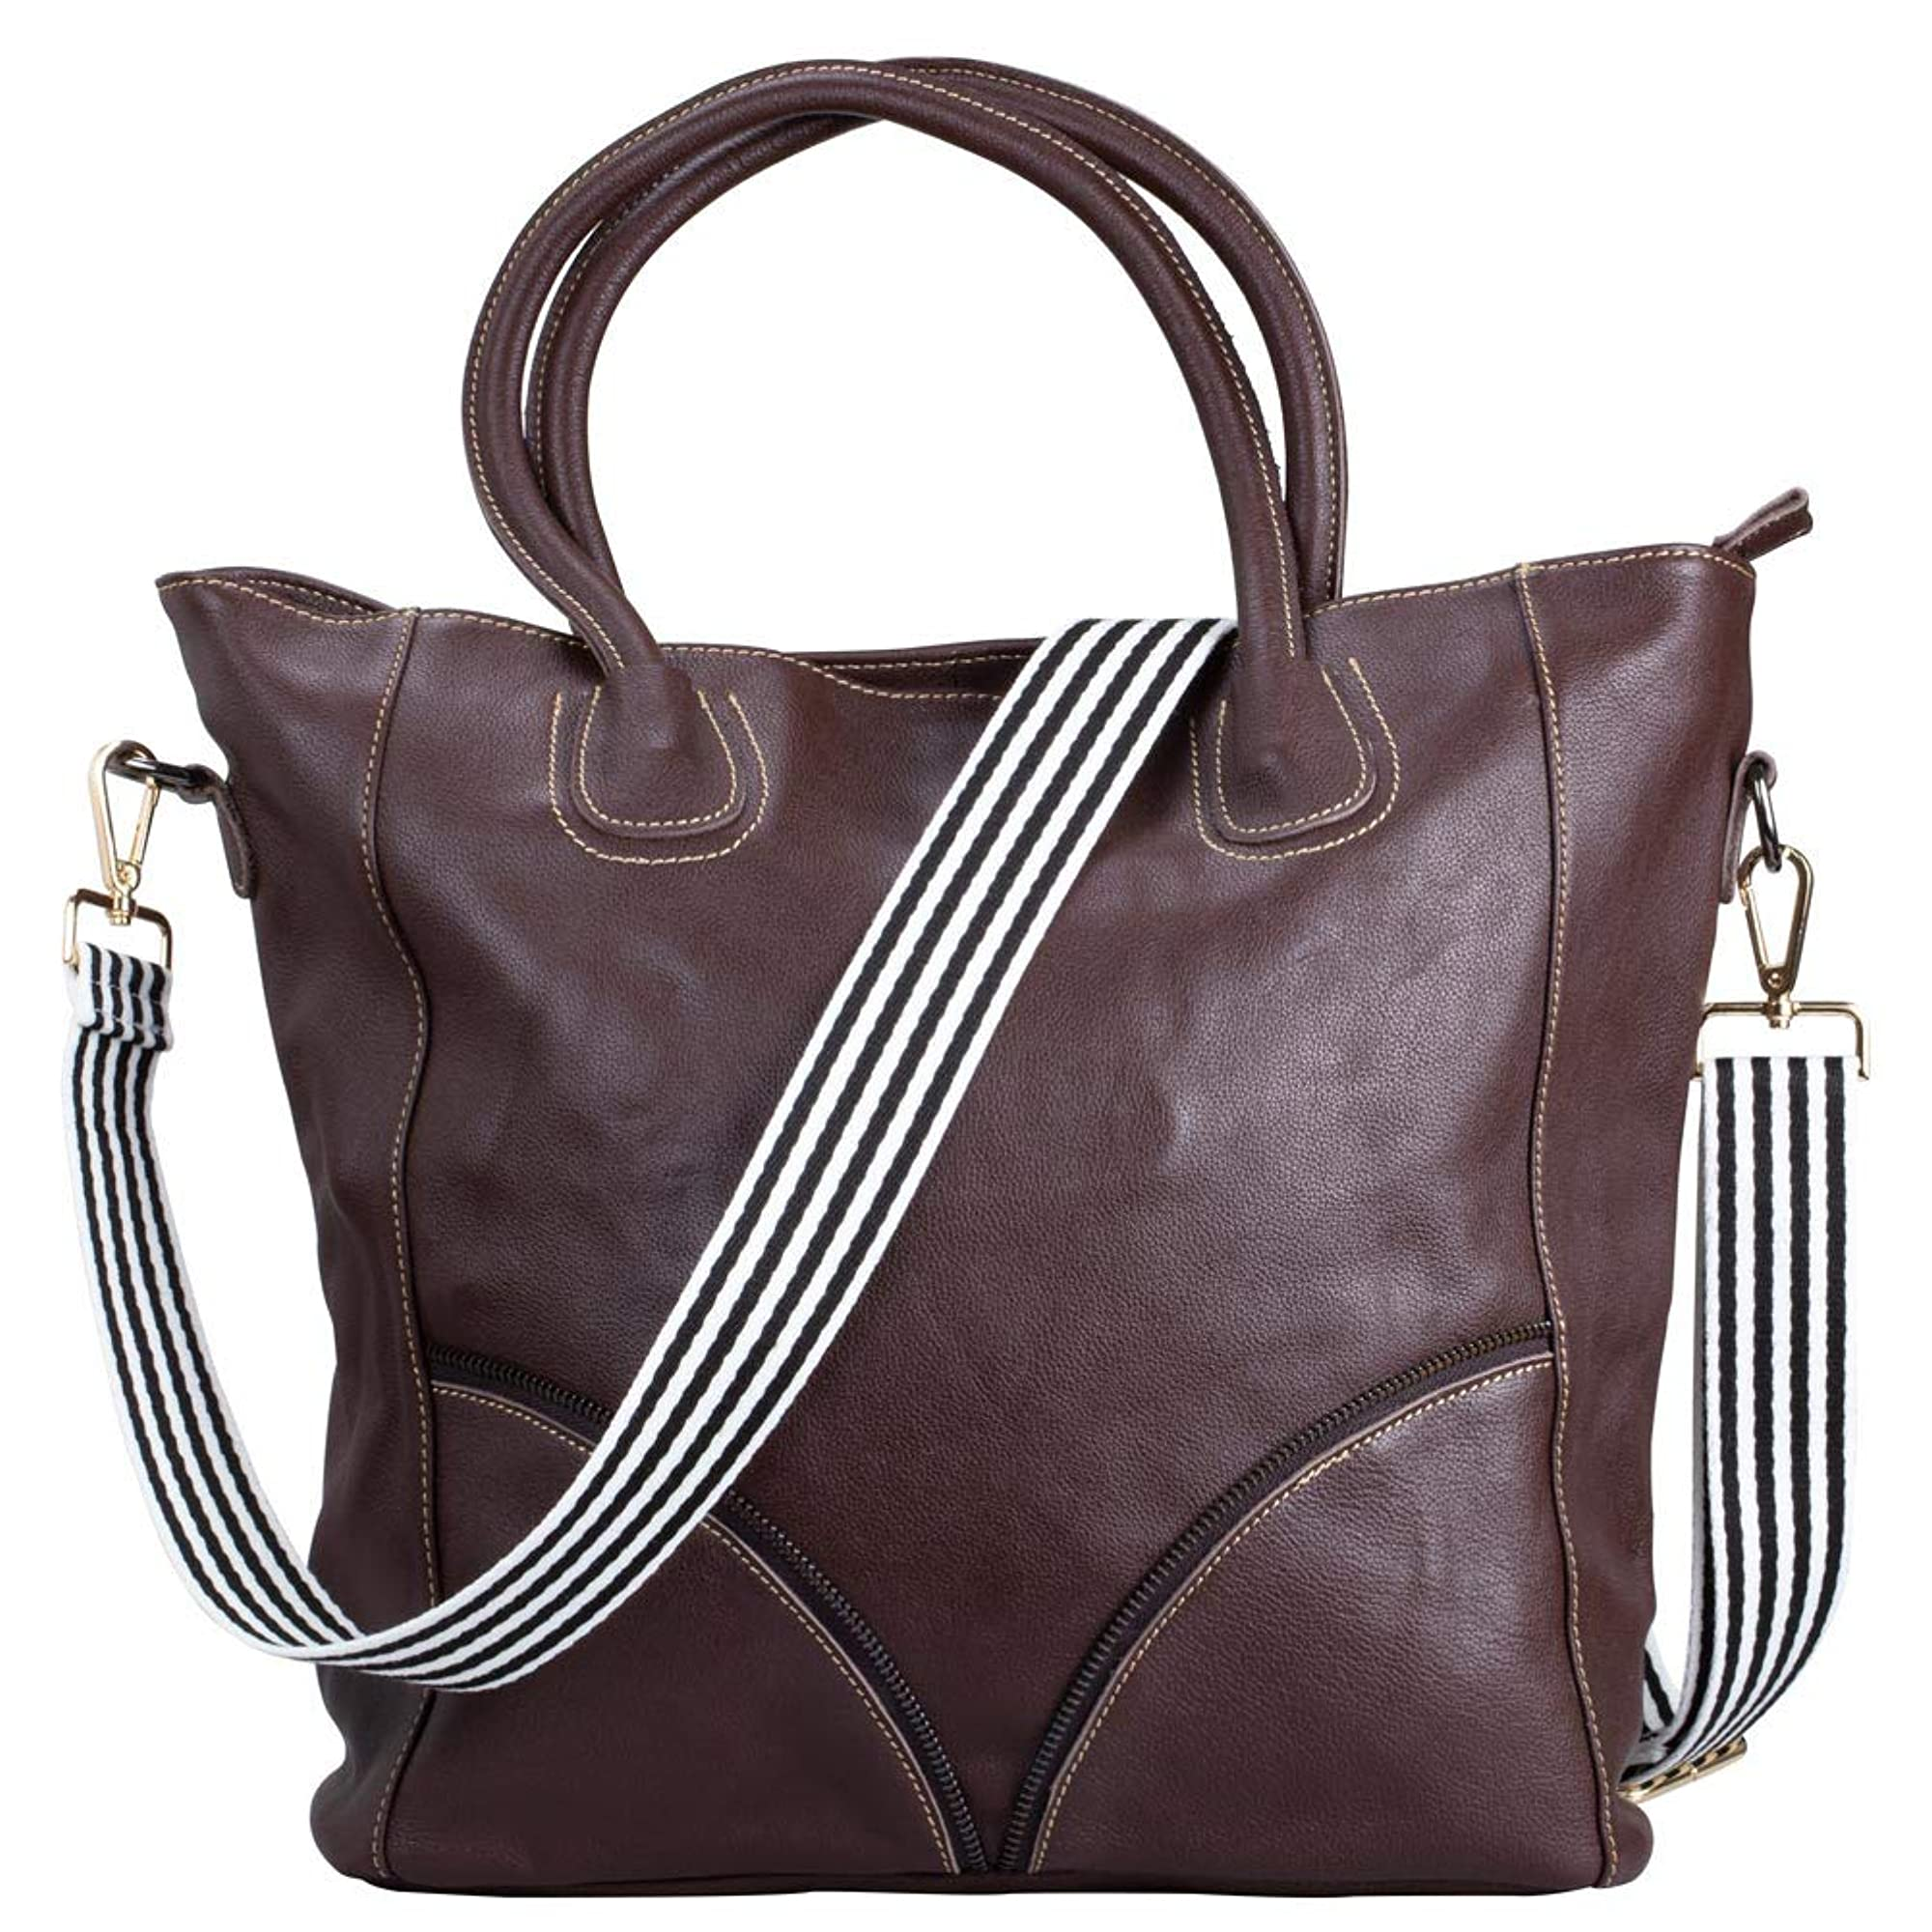 Adjustable Handbag And Crossbody Strap